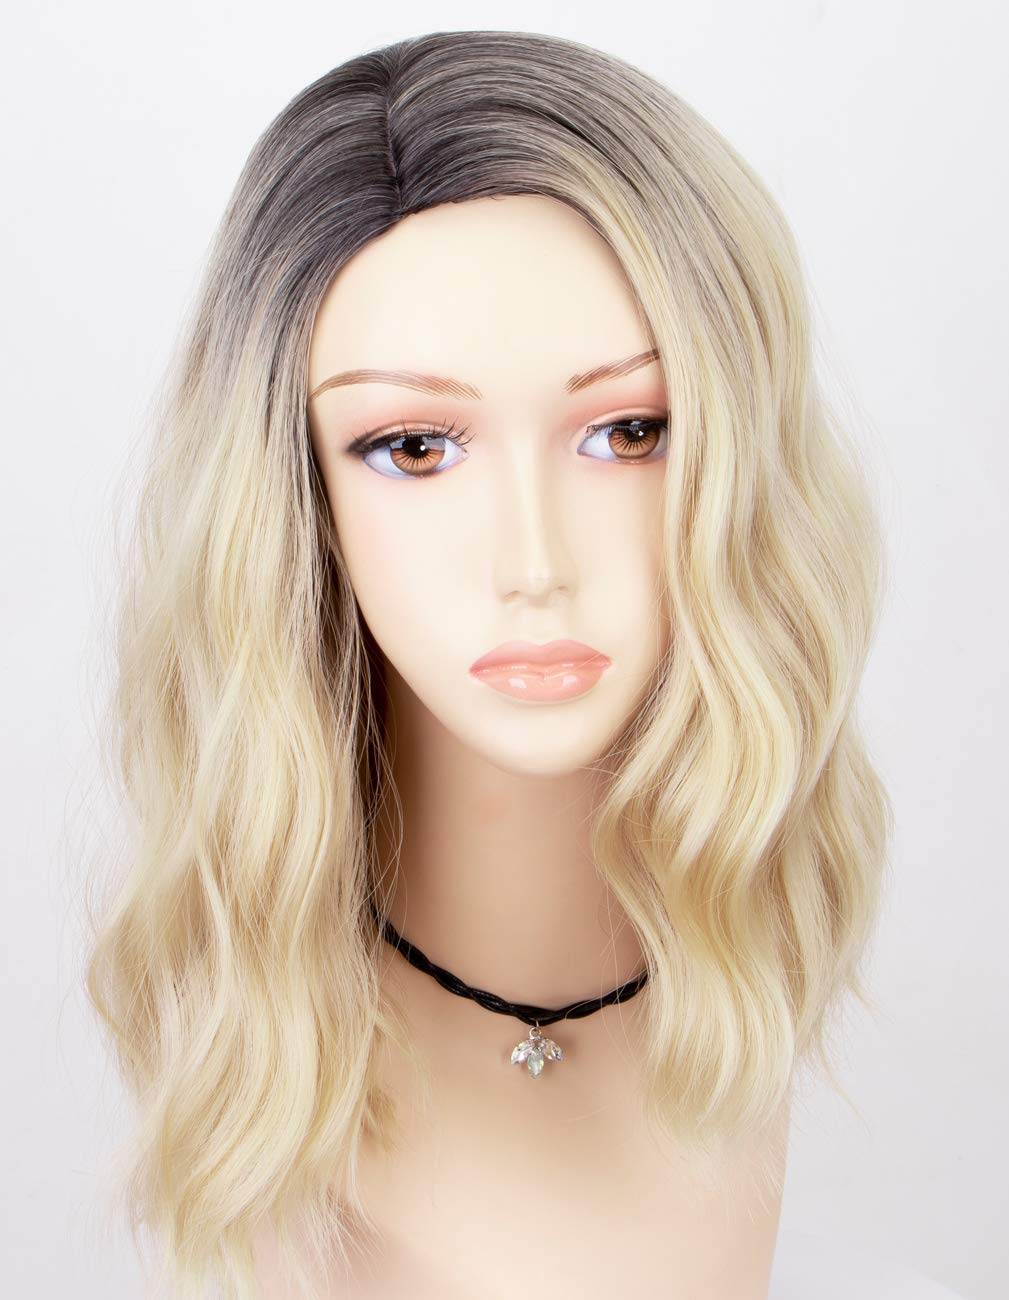 Amazon Com Persephone 2020 Ombre Blonde Bob Wig Synthetic Fiber Short Wavy Wigs For Women Glueless 2 Tones 613 Hair Replacement Wigs With Brown Roots Heat Resistant Beauty